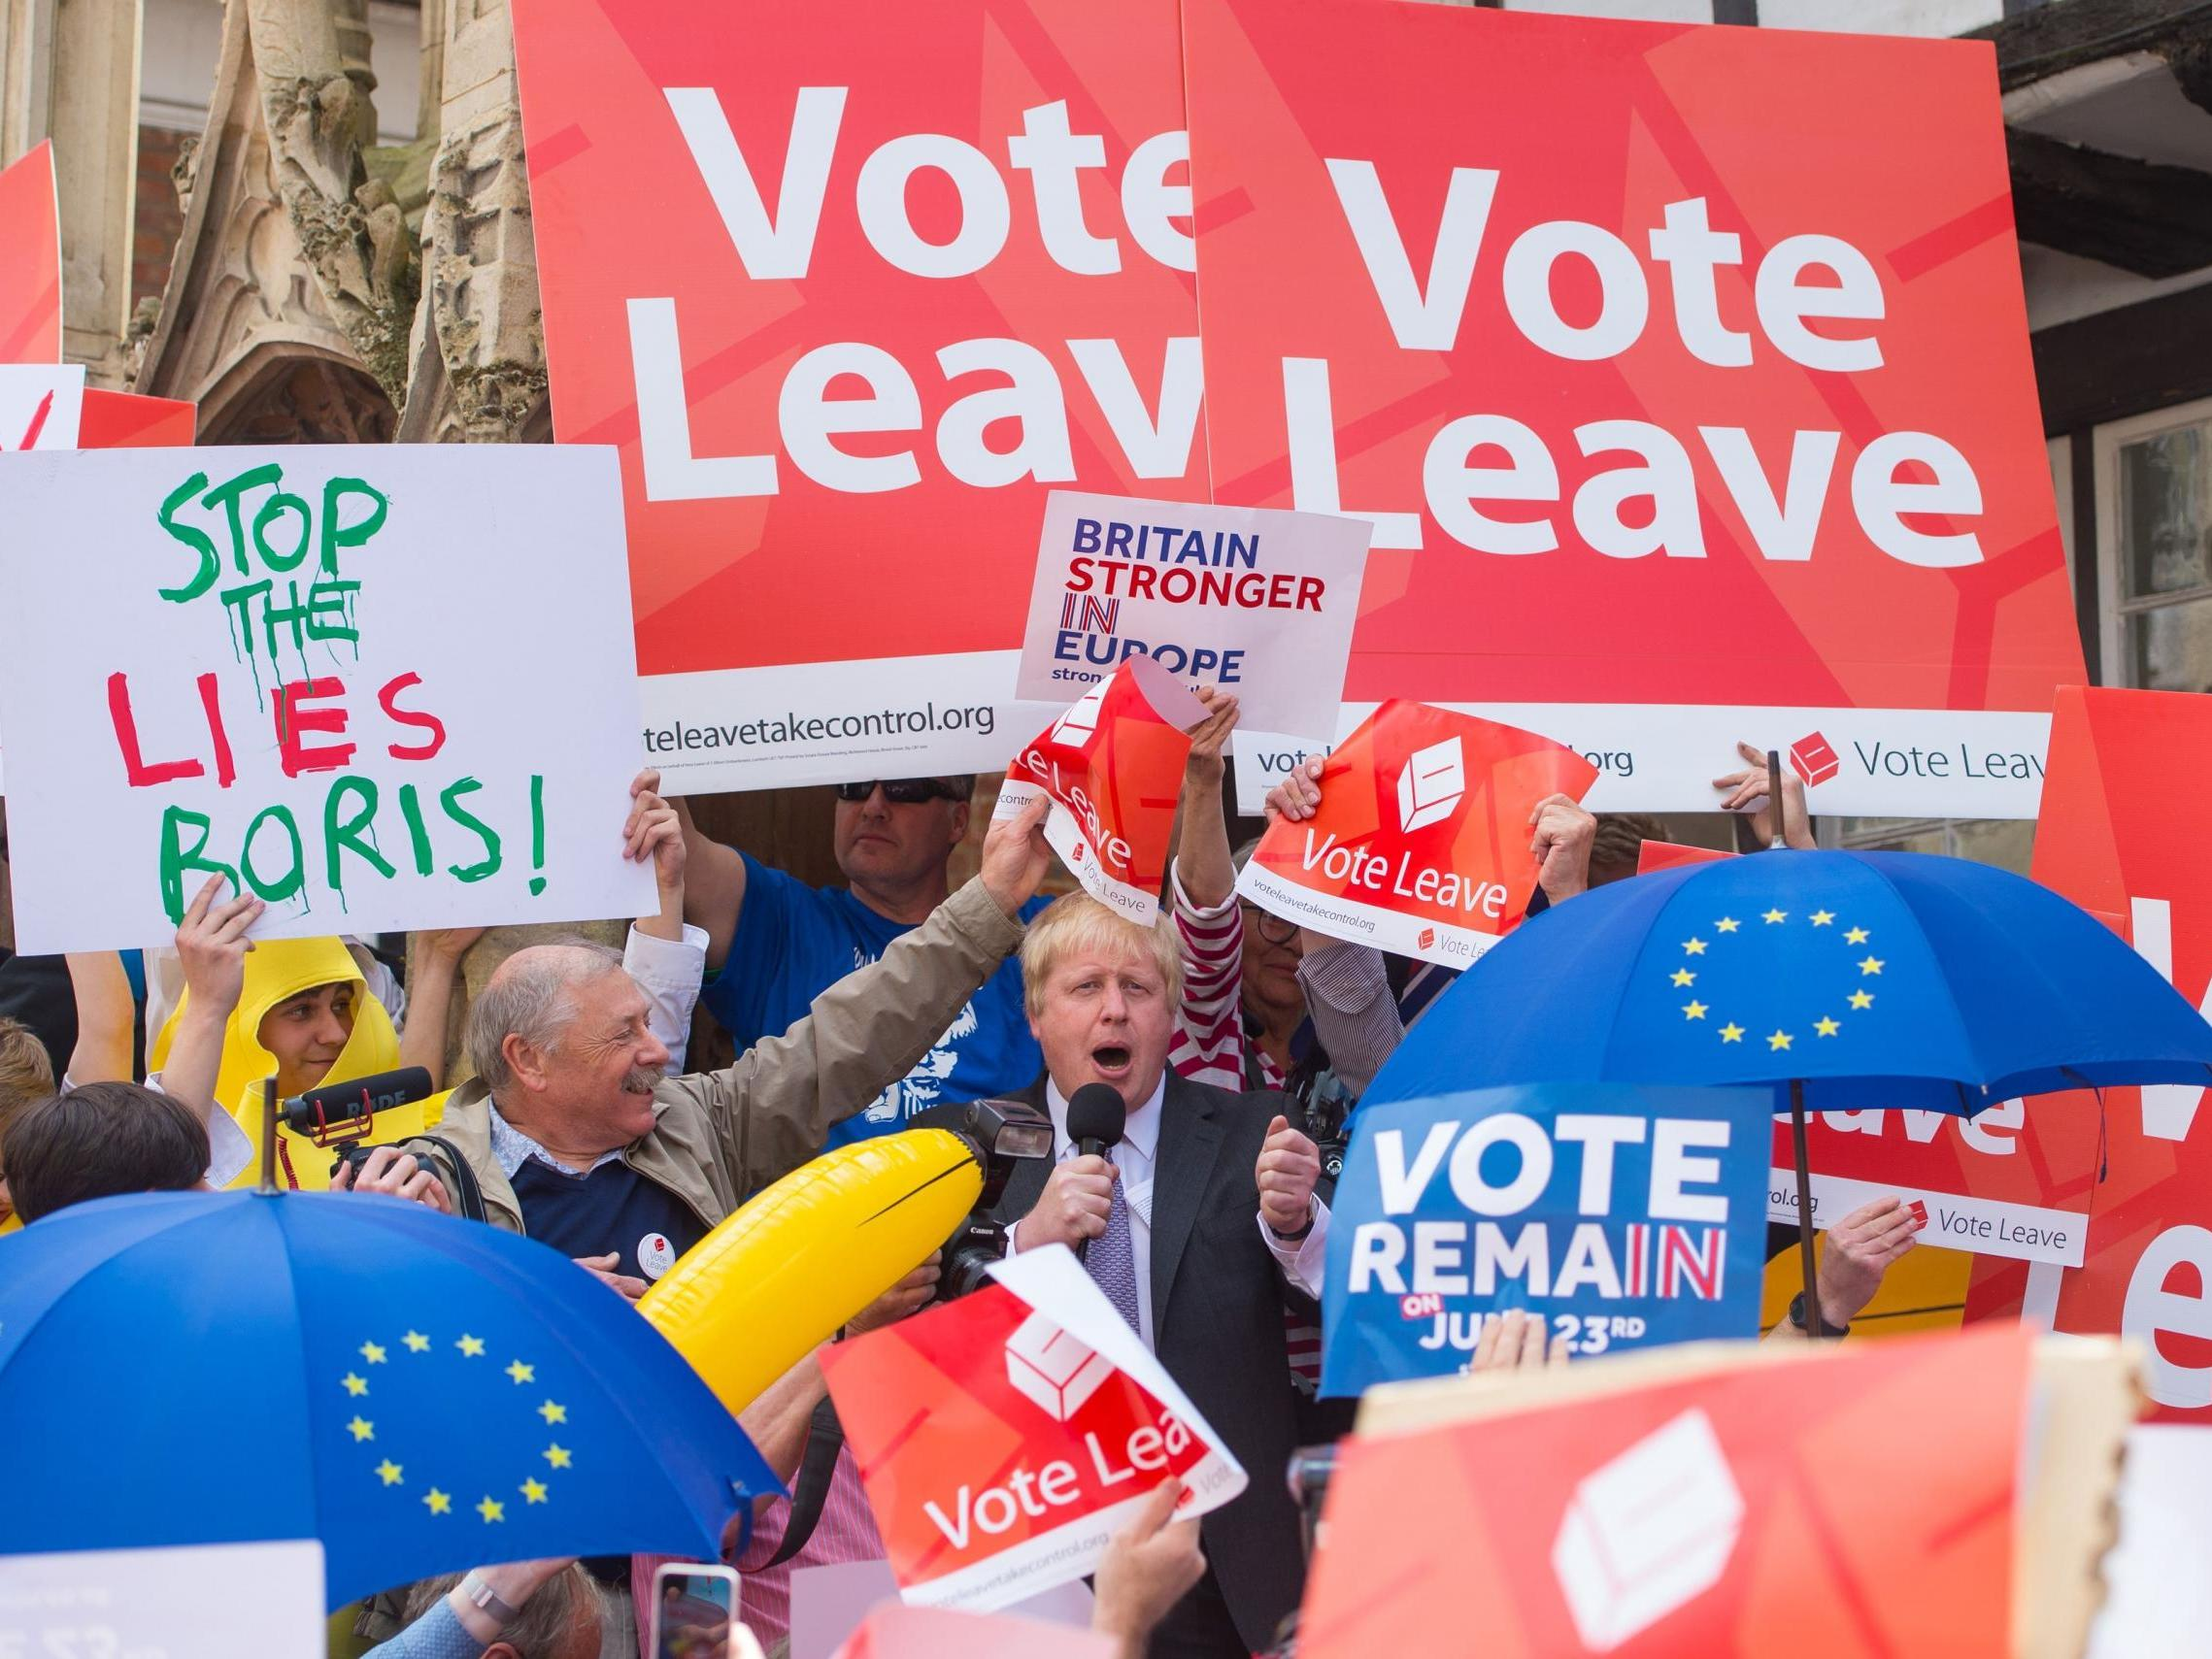 Leave 'very likely' won Brexit referendum due to illegal overspending, Oxford professor to tell High Court